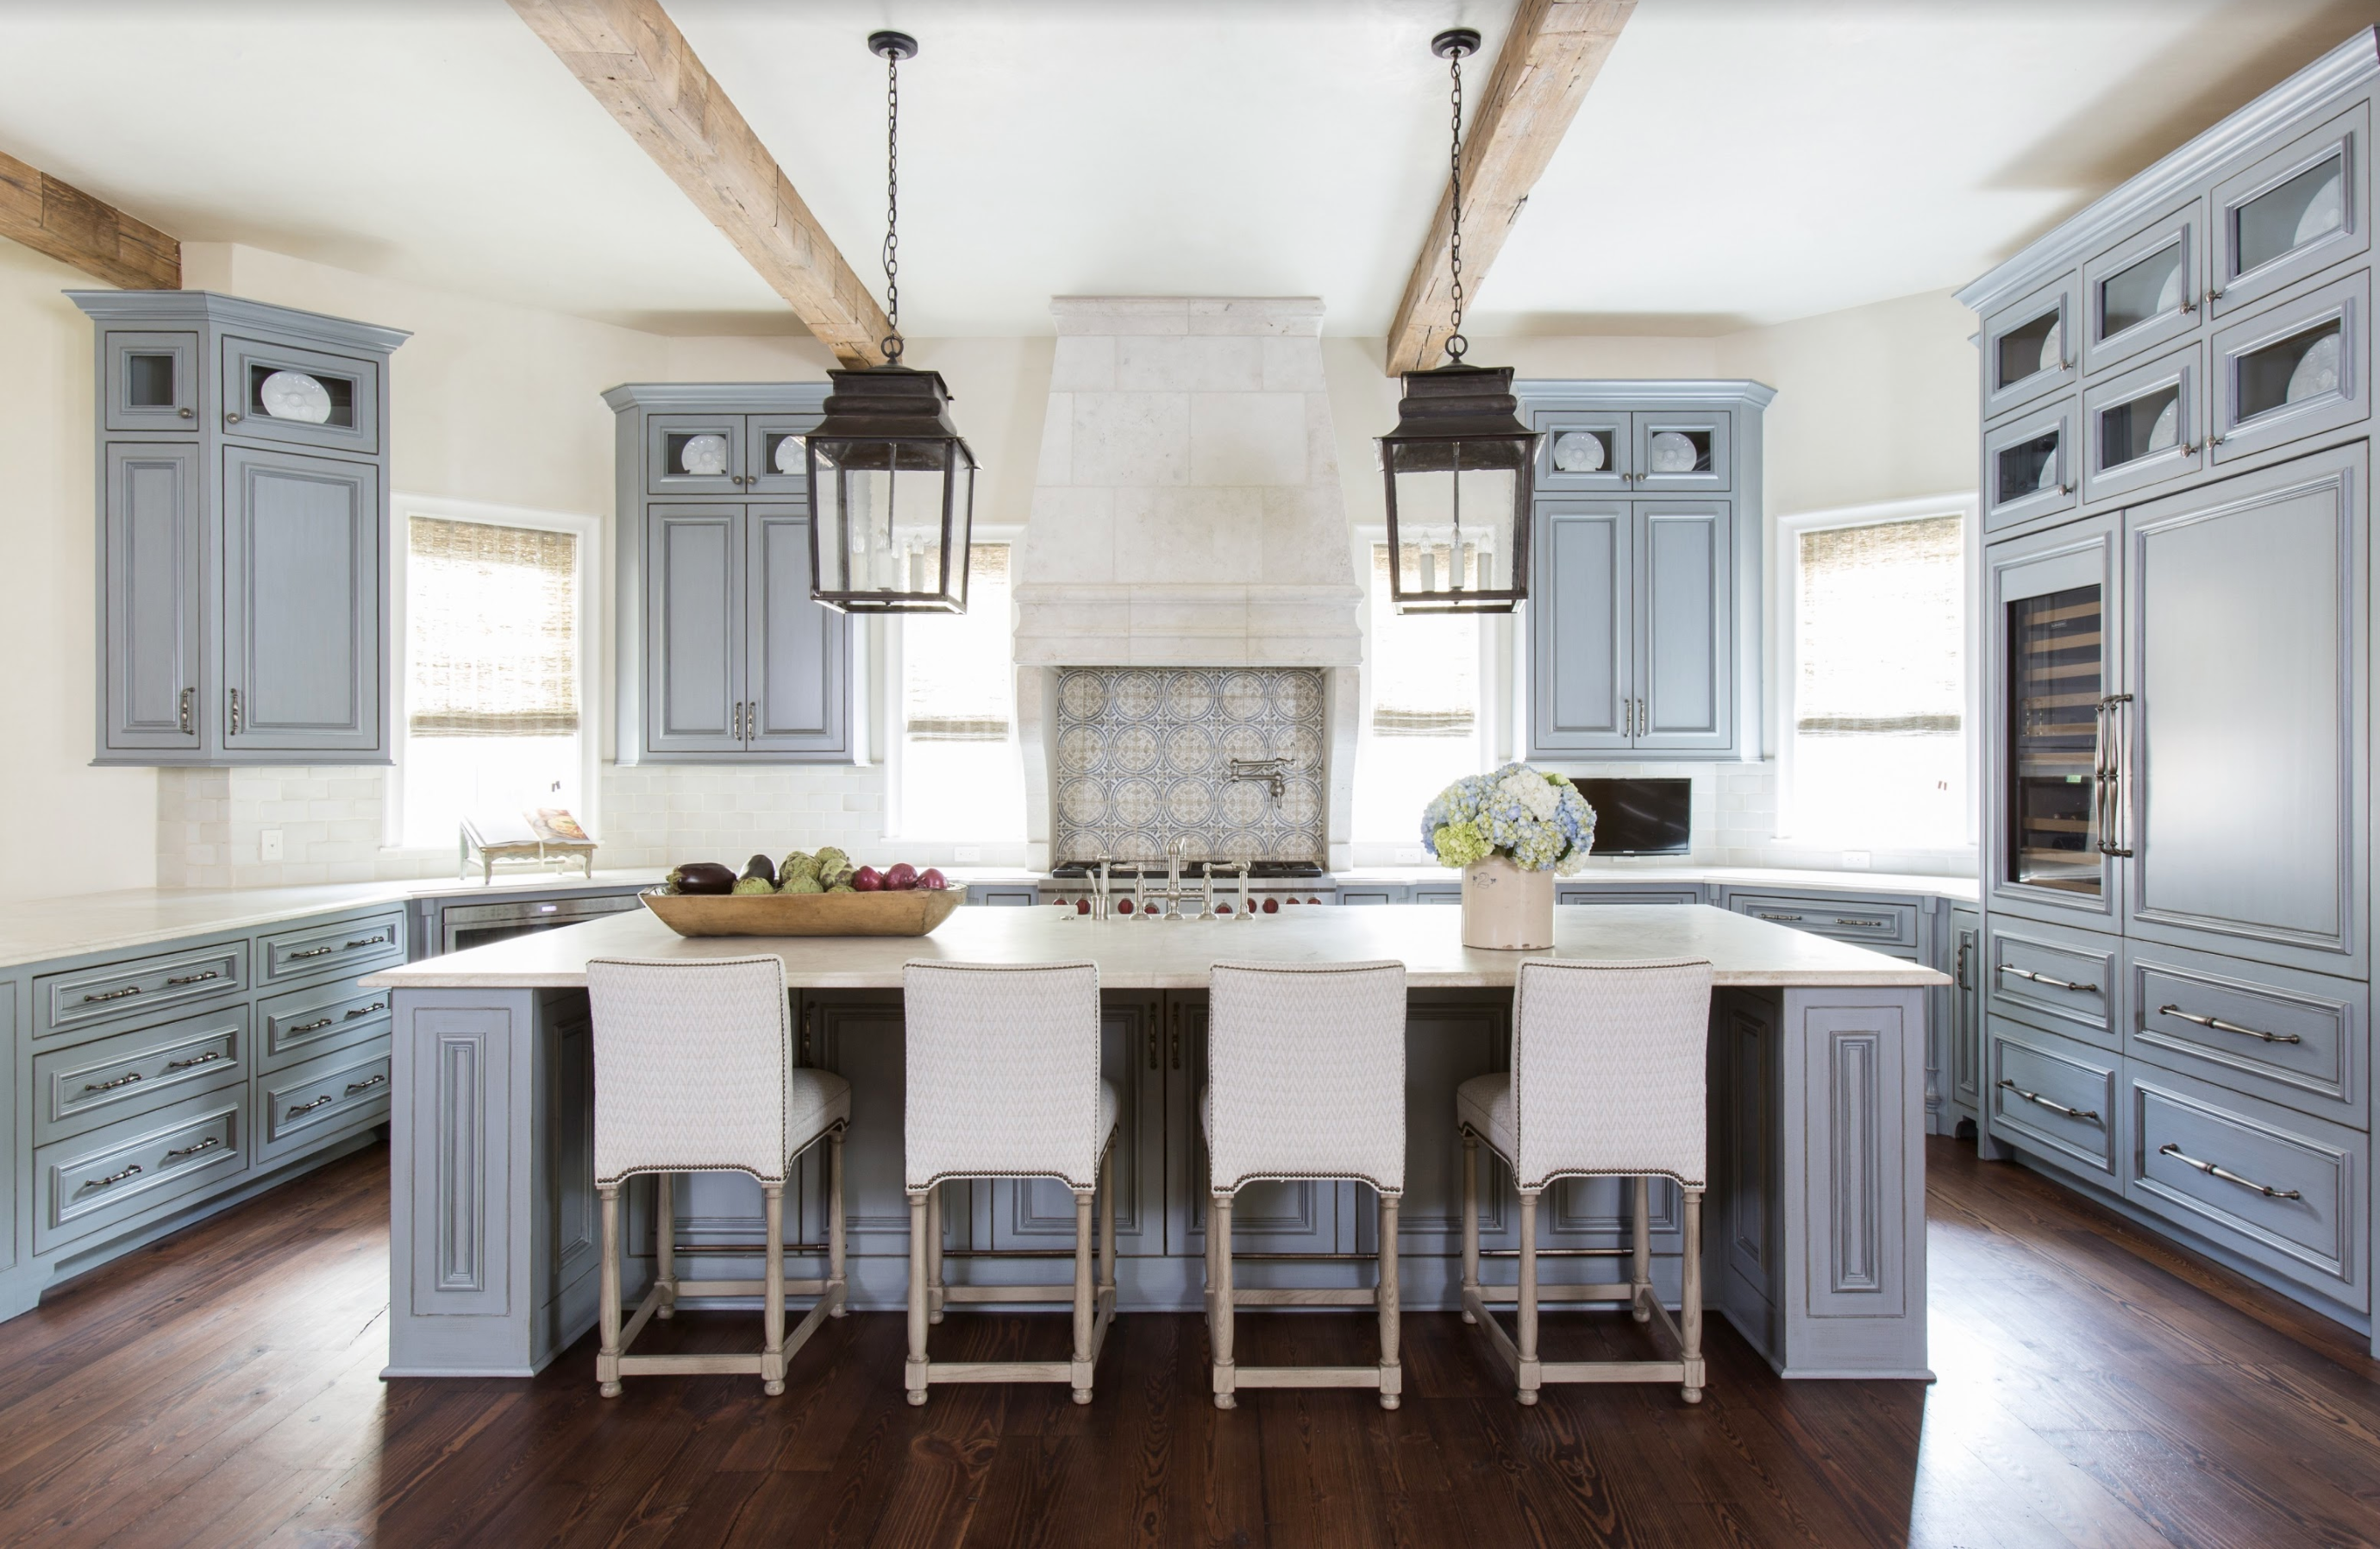 A gorgeous kitchen, as featured on the site of Luxe magazine, in July 2017, designed by Houston based Lucas Eilers Design Associates